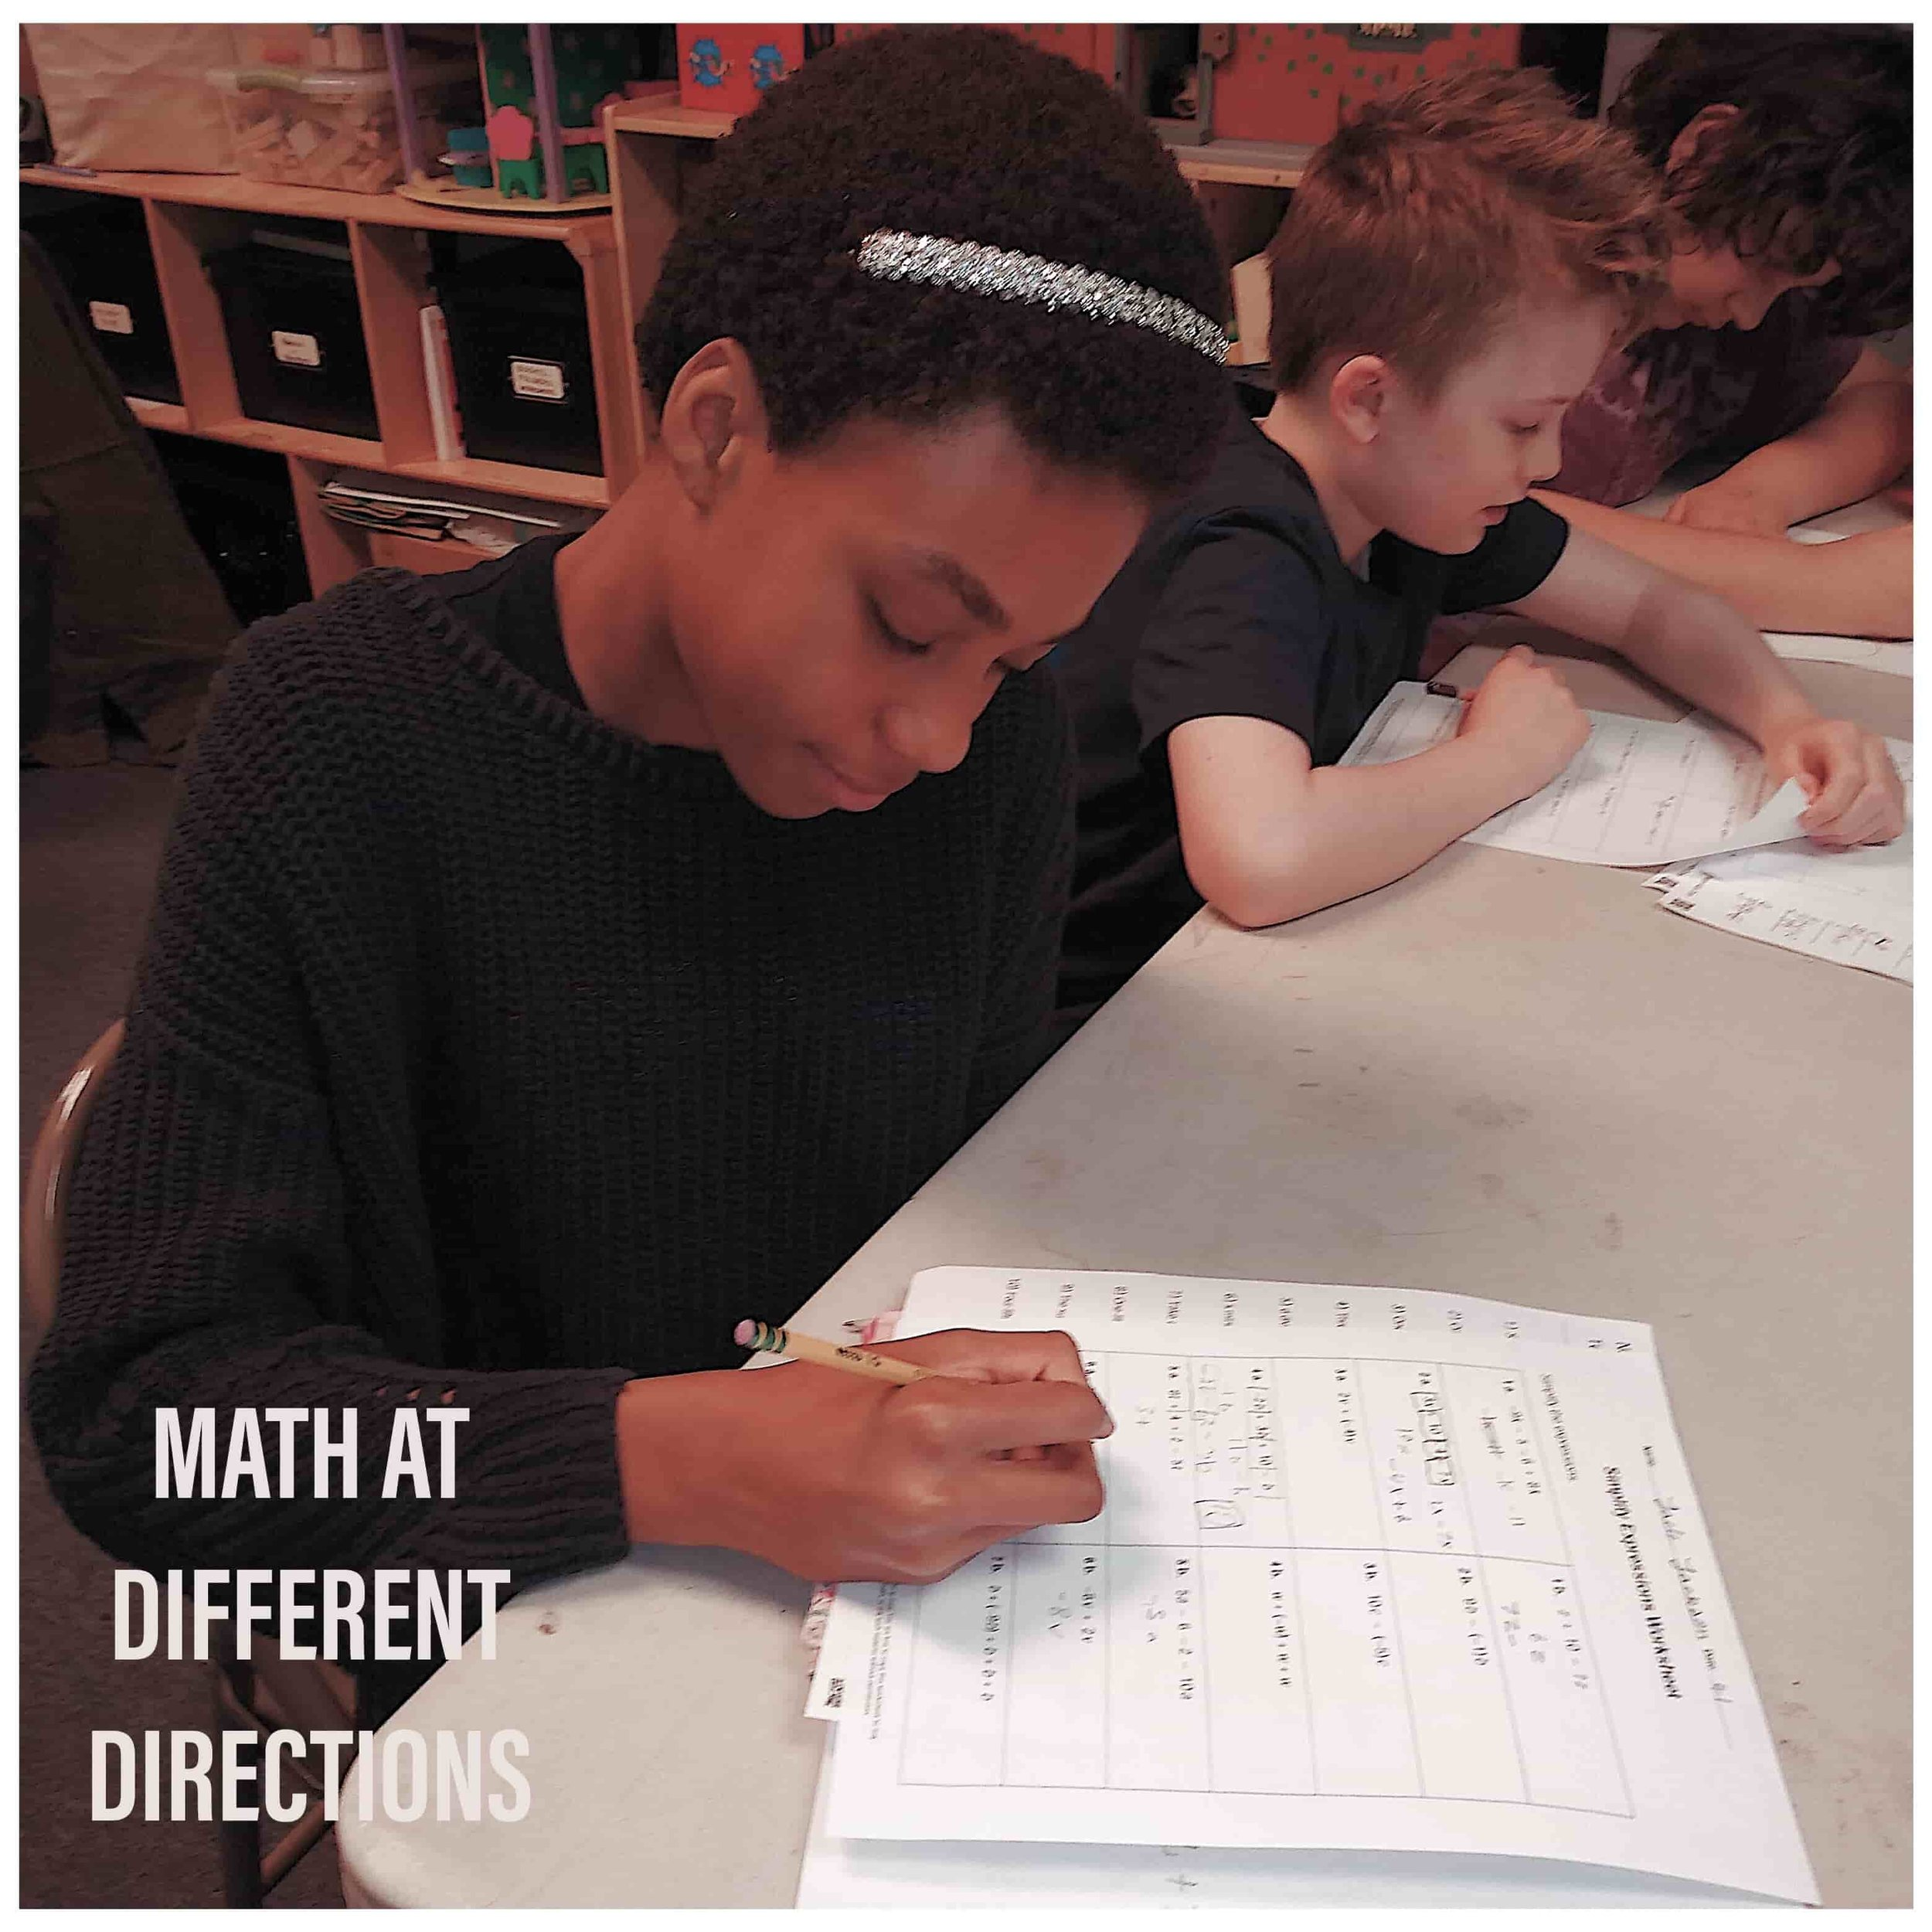 Homeschooling Math Classes at Different Directions NYC 05-1.jpeg